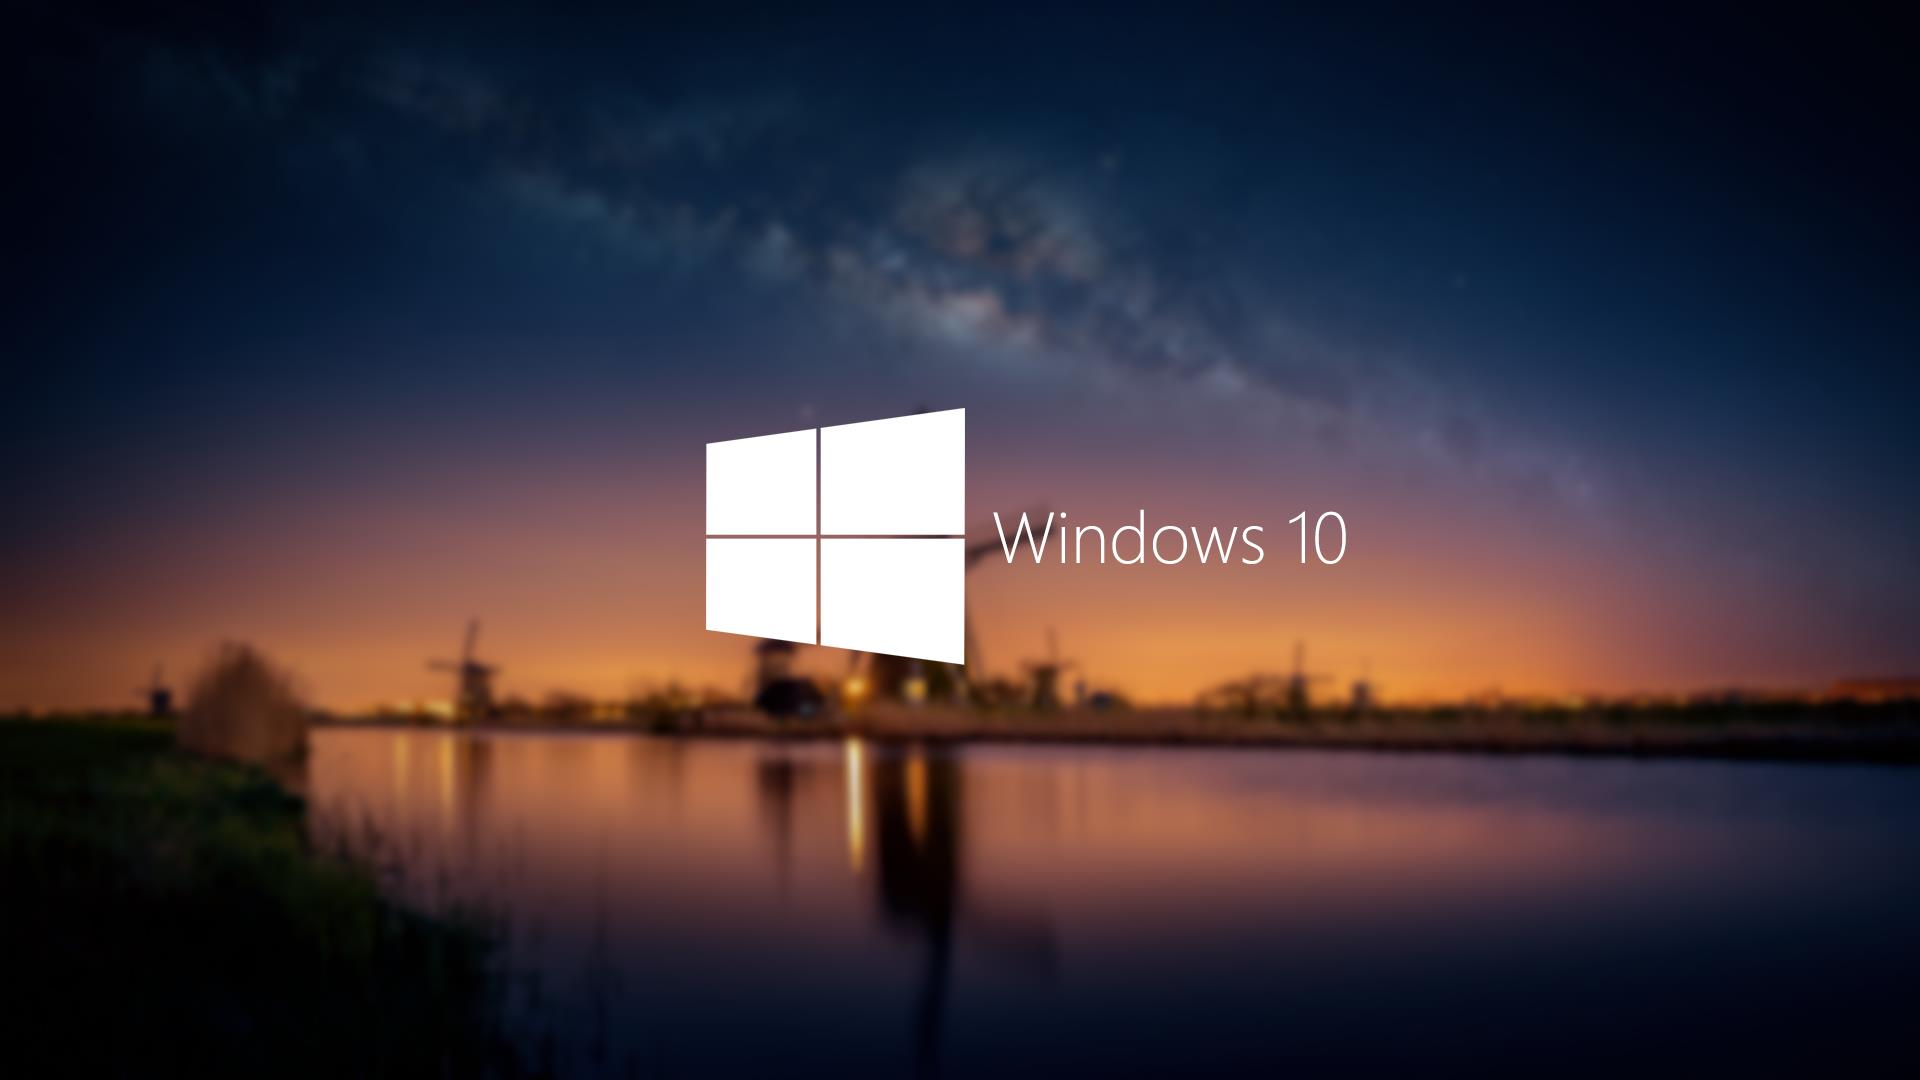 Stunning Windows 10 Wallpapers